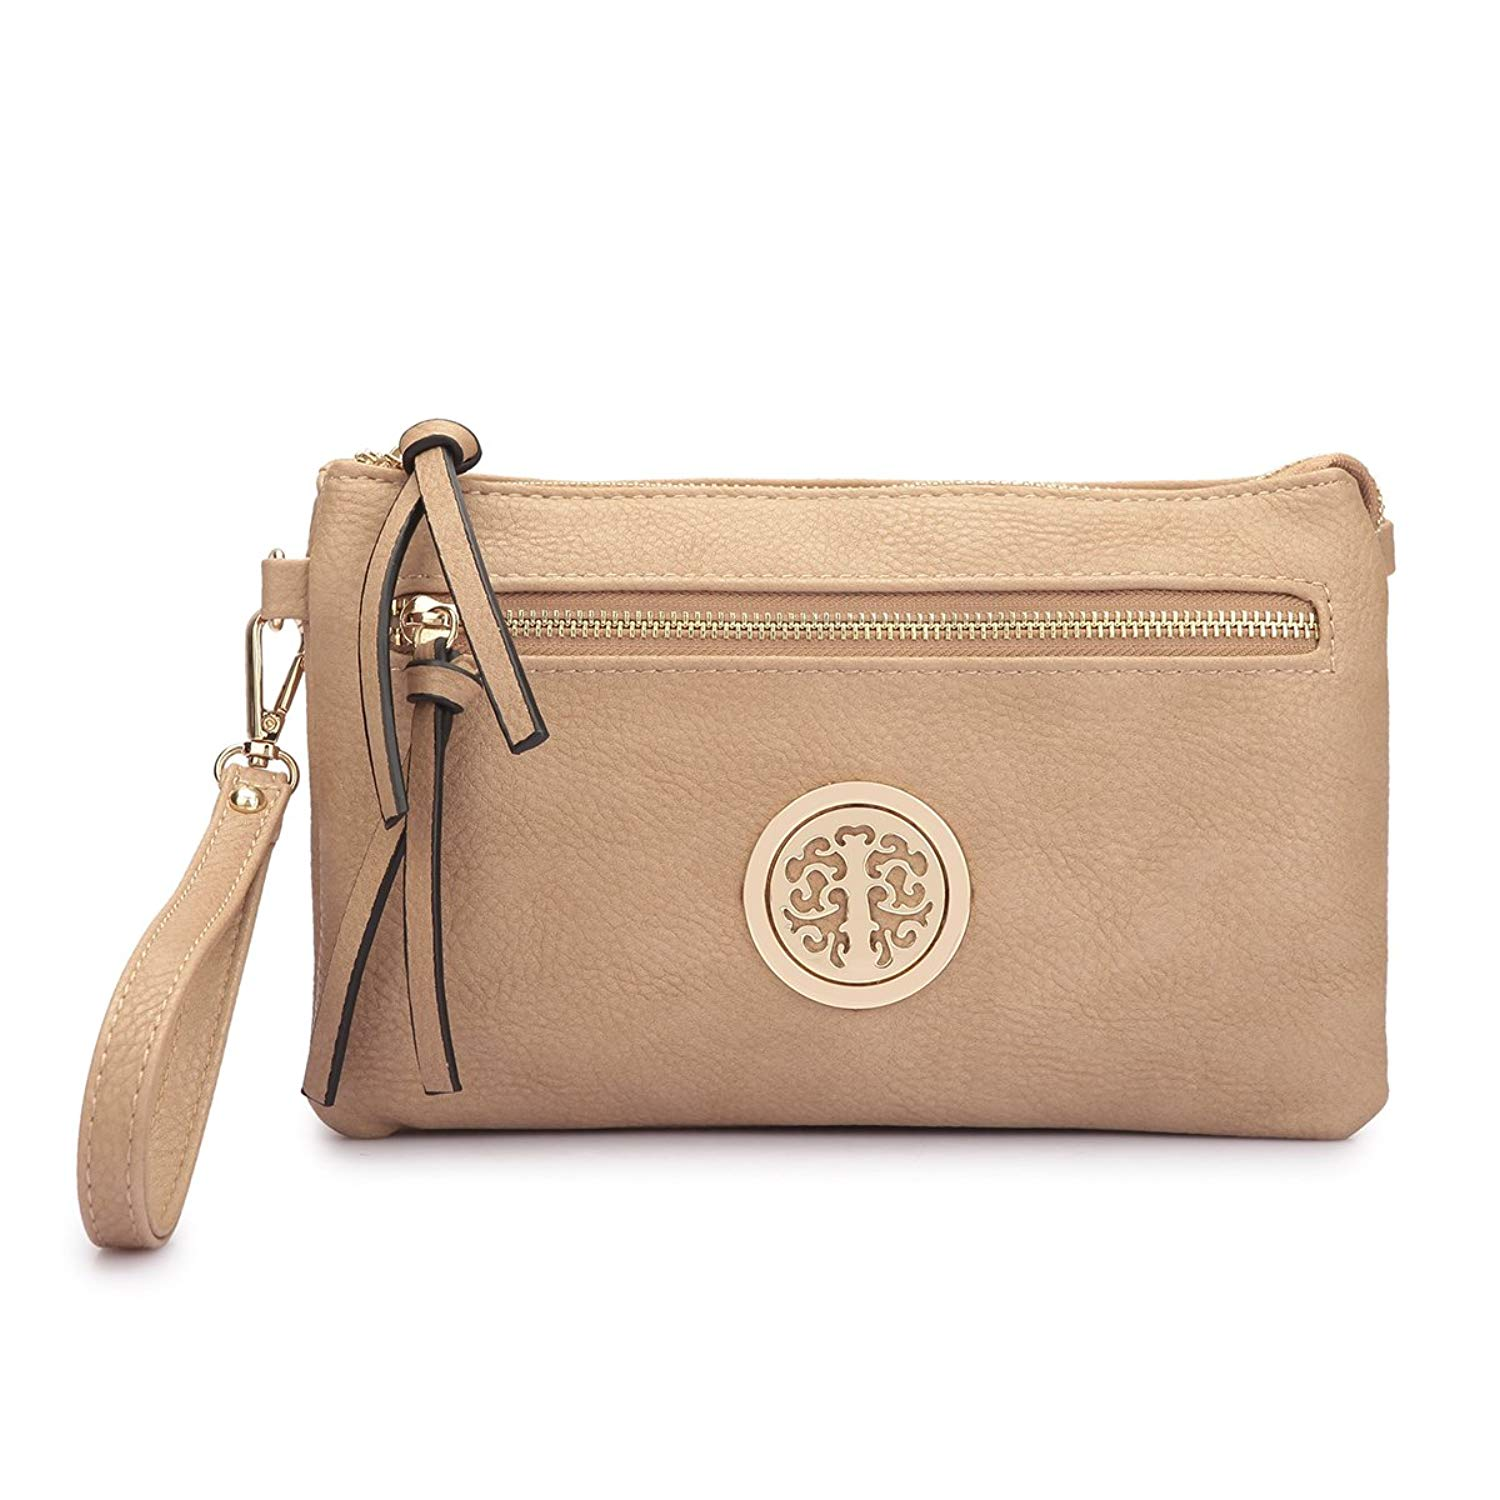 MMK Collection Fashion Crossbody Bag ~Messenger Purse~Crossbody Bag for Women~Designer Fashion Wristlet Wallet Multi Pocket Clutch Purse (MA-18-7217 Beige)